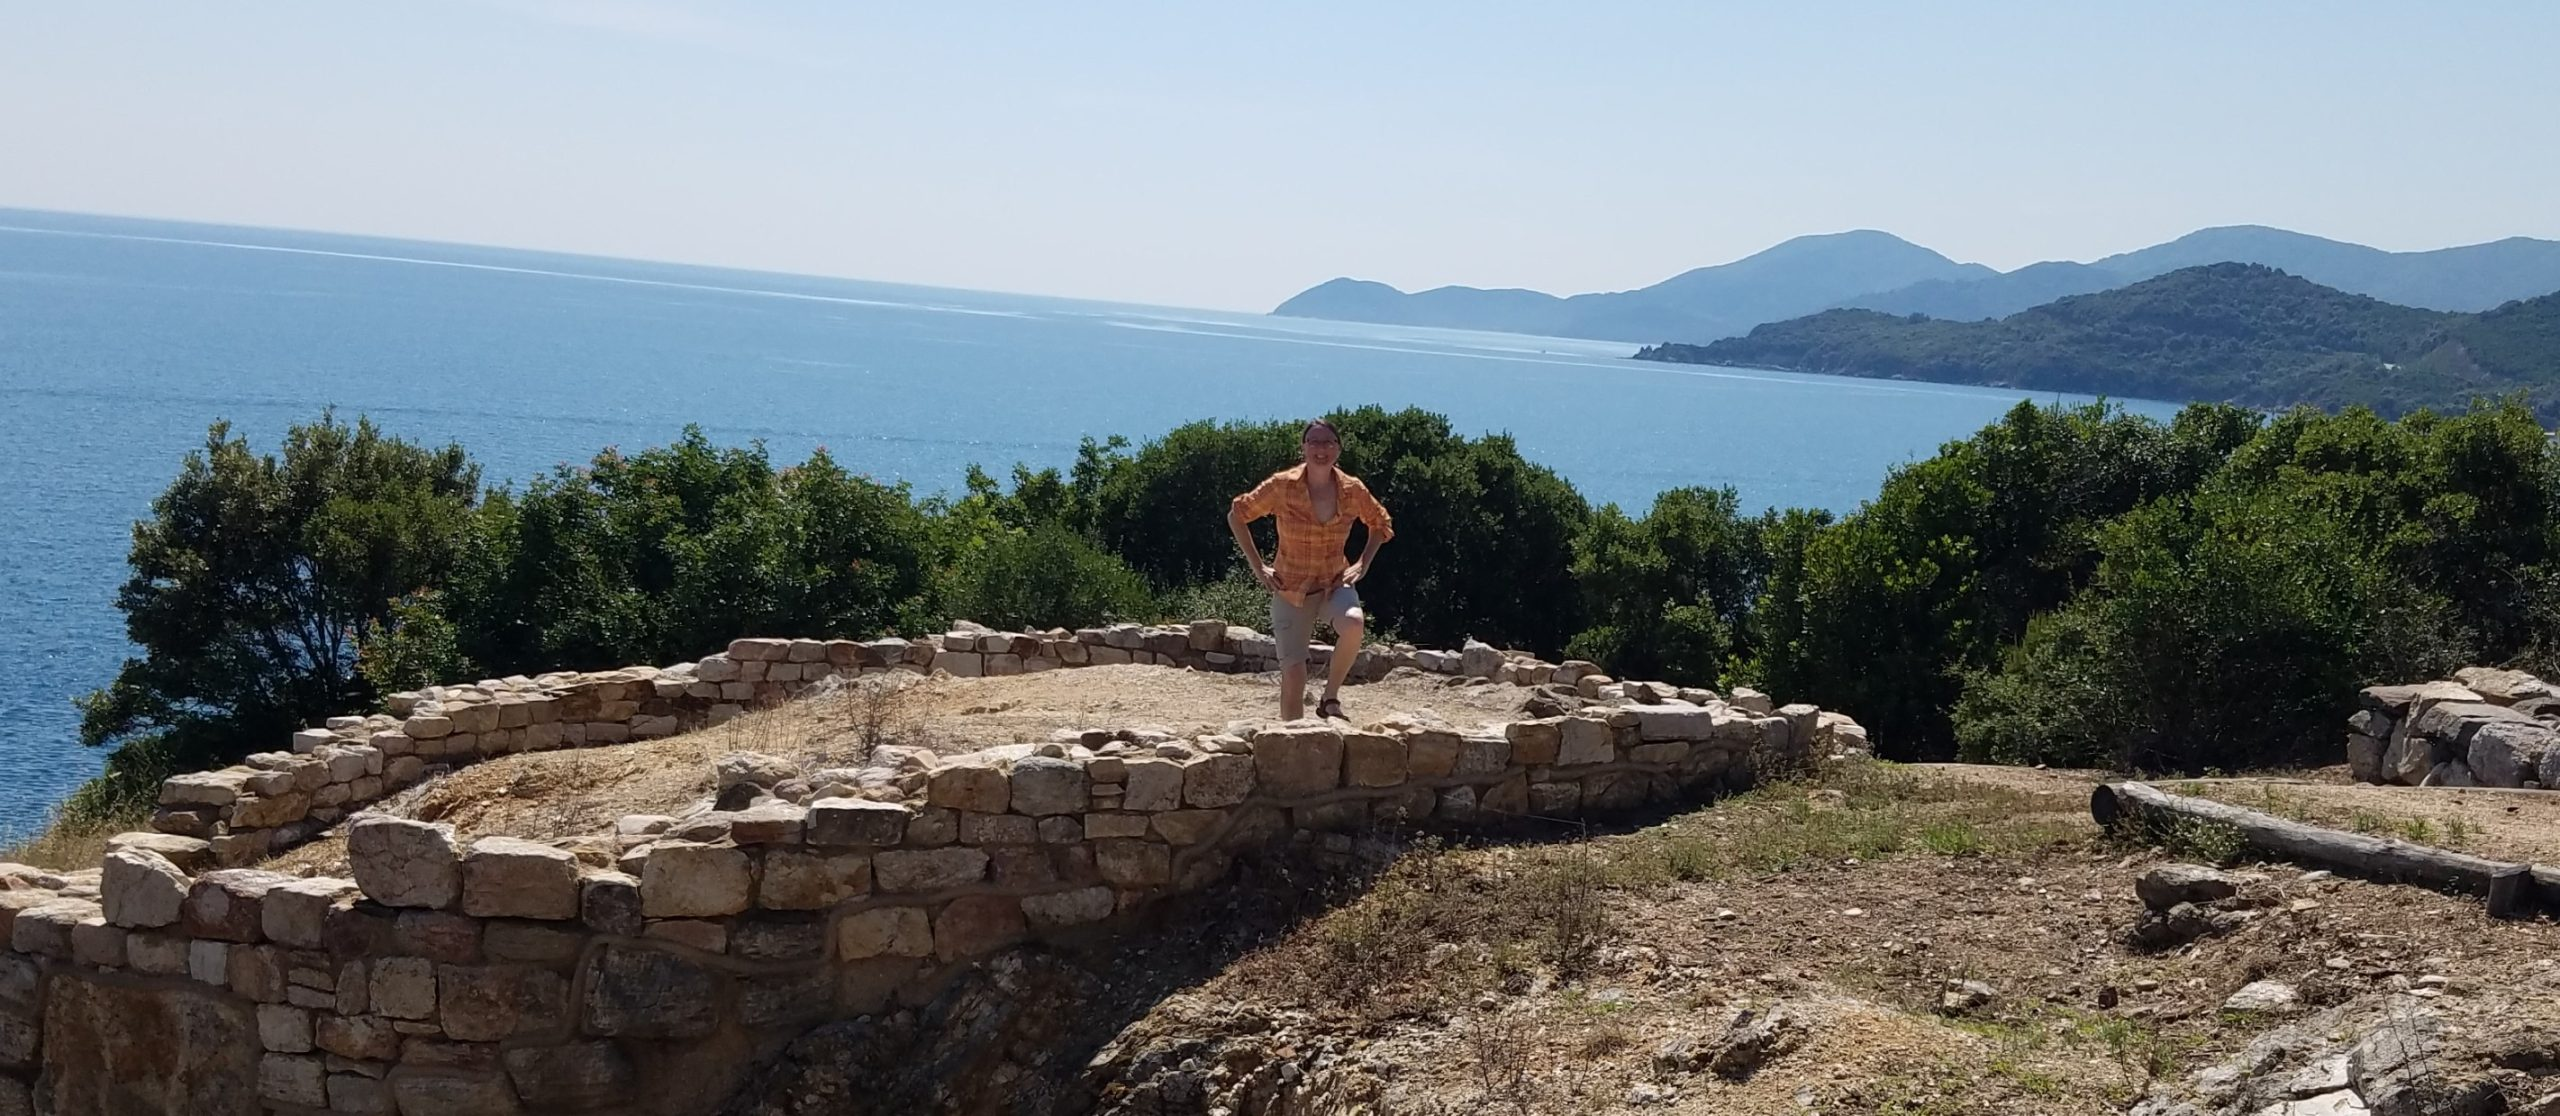 A picture of me standing in the ruins of Ancient Stagira, Greece, with mountains and the sea in the background